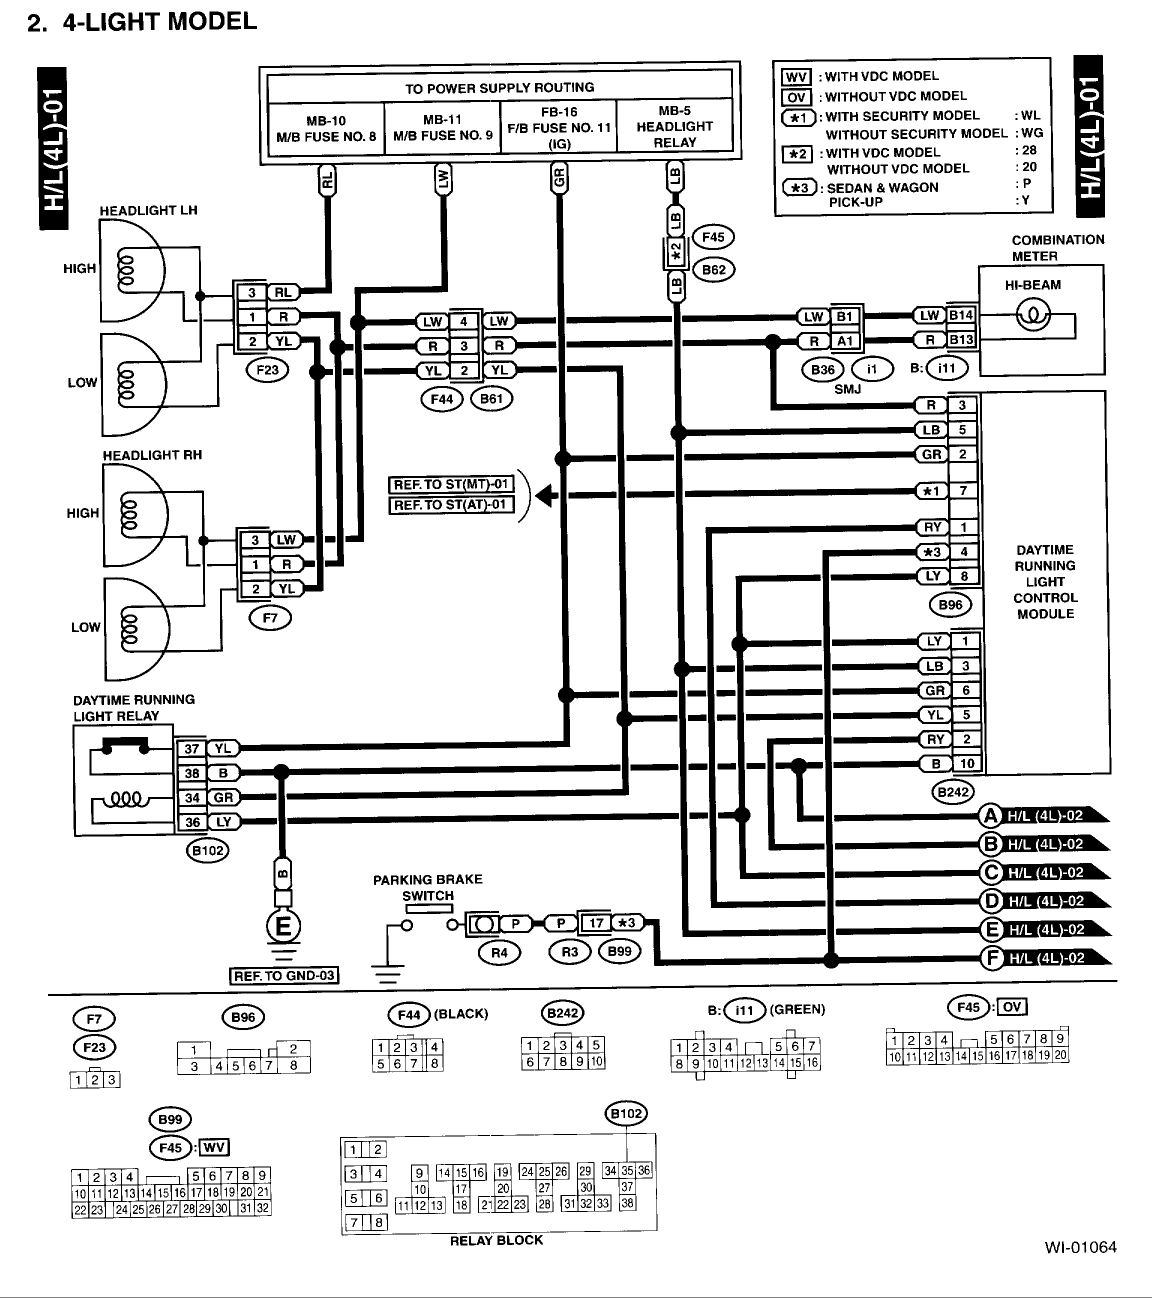 99 Subaru Impreza Wiring Diagram - Blaupunkt Equalizer Wiring Diagram for Wiring  Diagram Schematics | 99 Subaru Impreza Headlight Wiring Diagram |  | Wiring Diagram Schematics